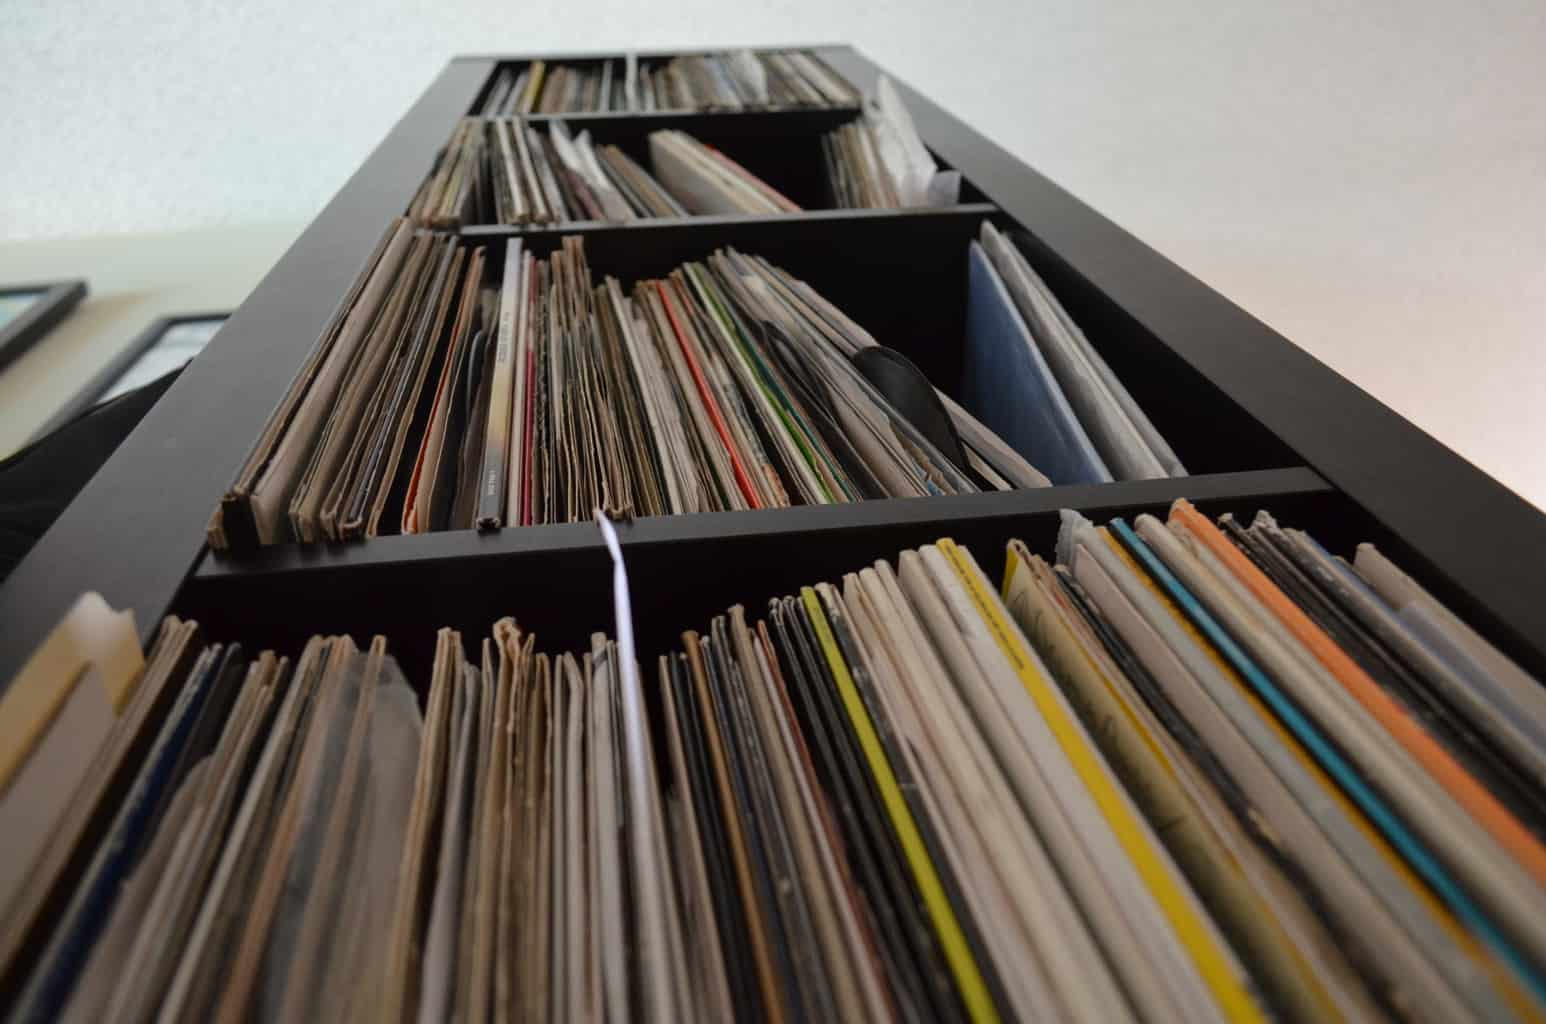 Kallax Vinyl Record Collection Storage Unit : lp record storage units  - Aquiesqueretaro.Com